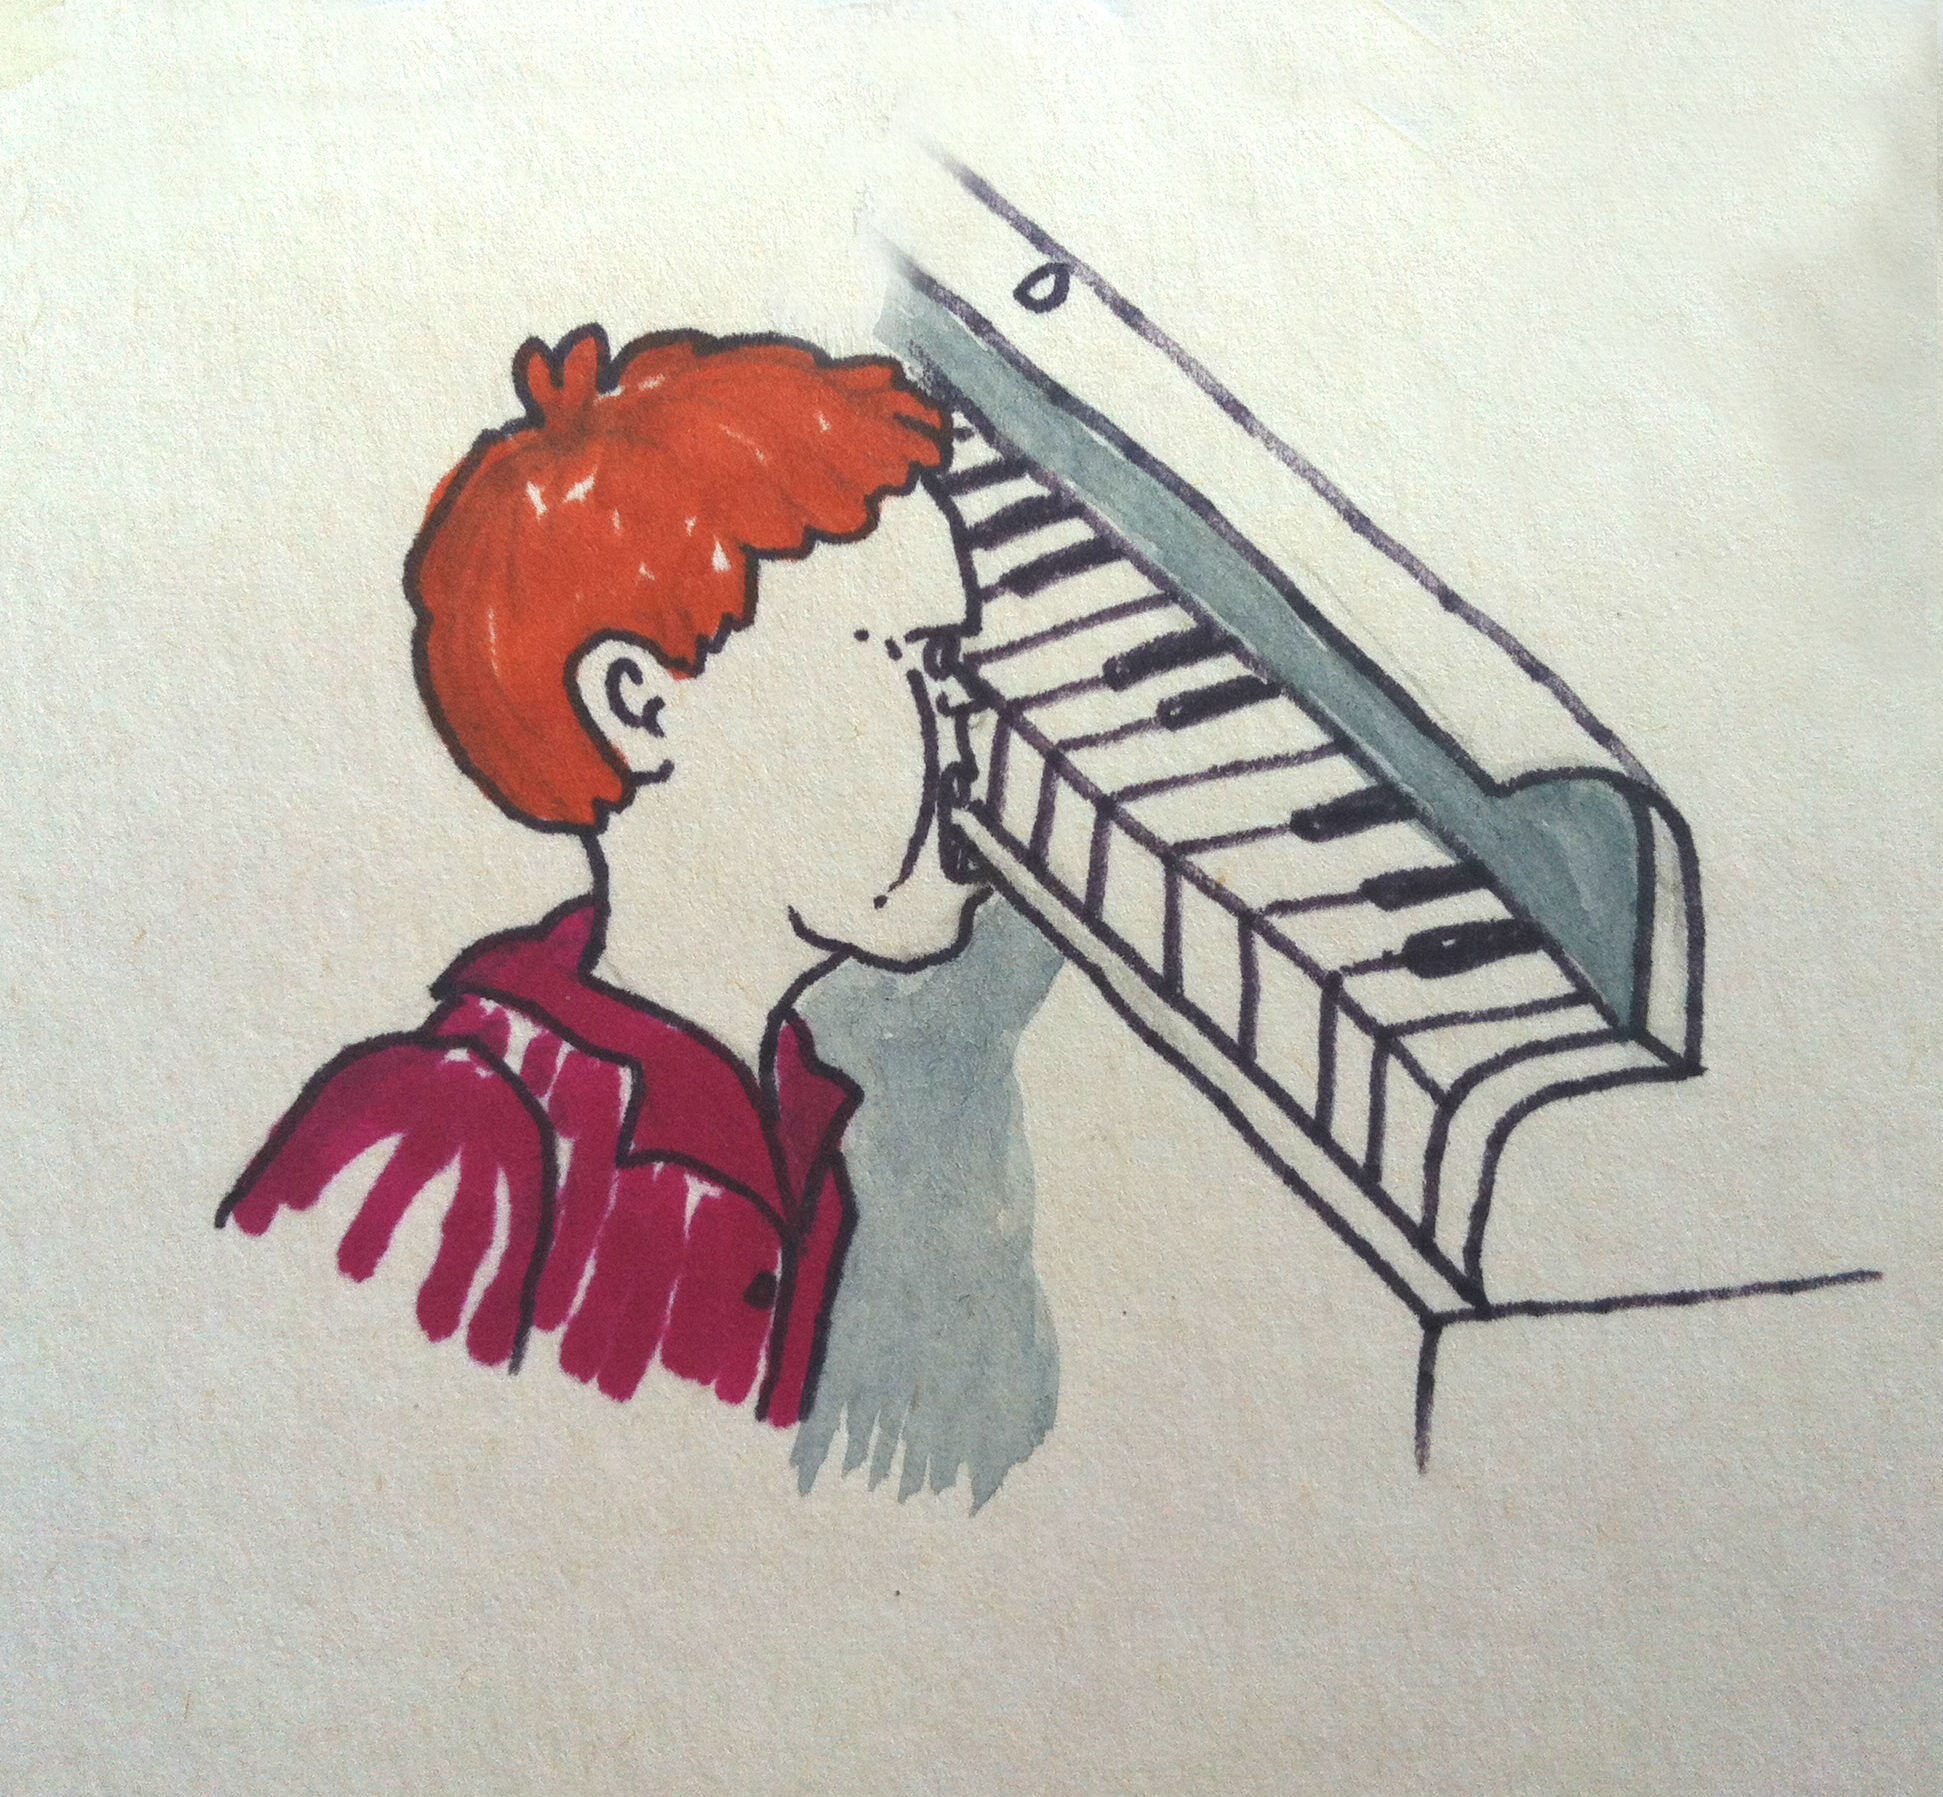 Artwork from the book - Your Piano. Illustrations: Miki Ben-Cnaan by Mel Rosenberg - מל רוזנברג - Illustrated by Miki Ben-Cnaan - Ourboox.com